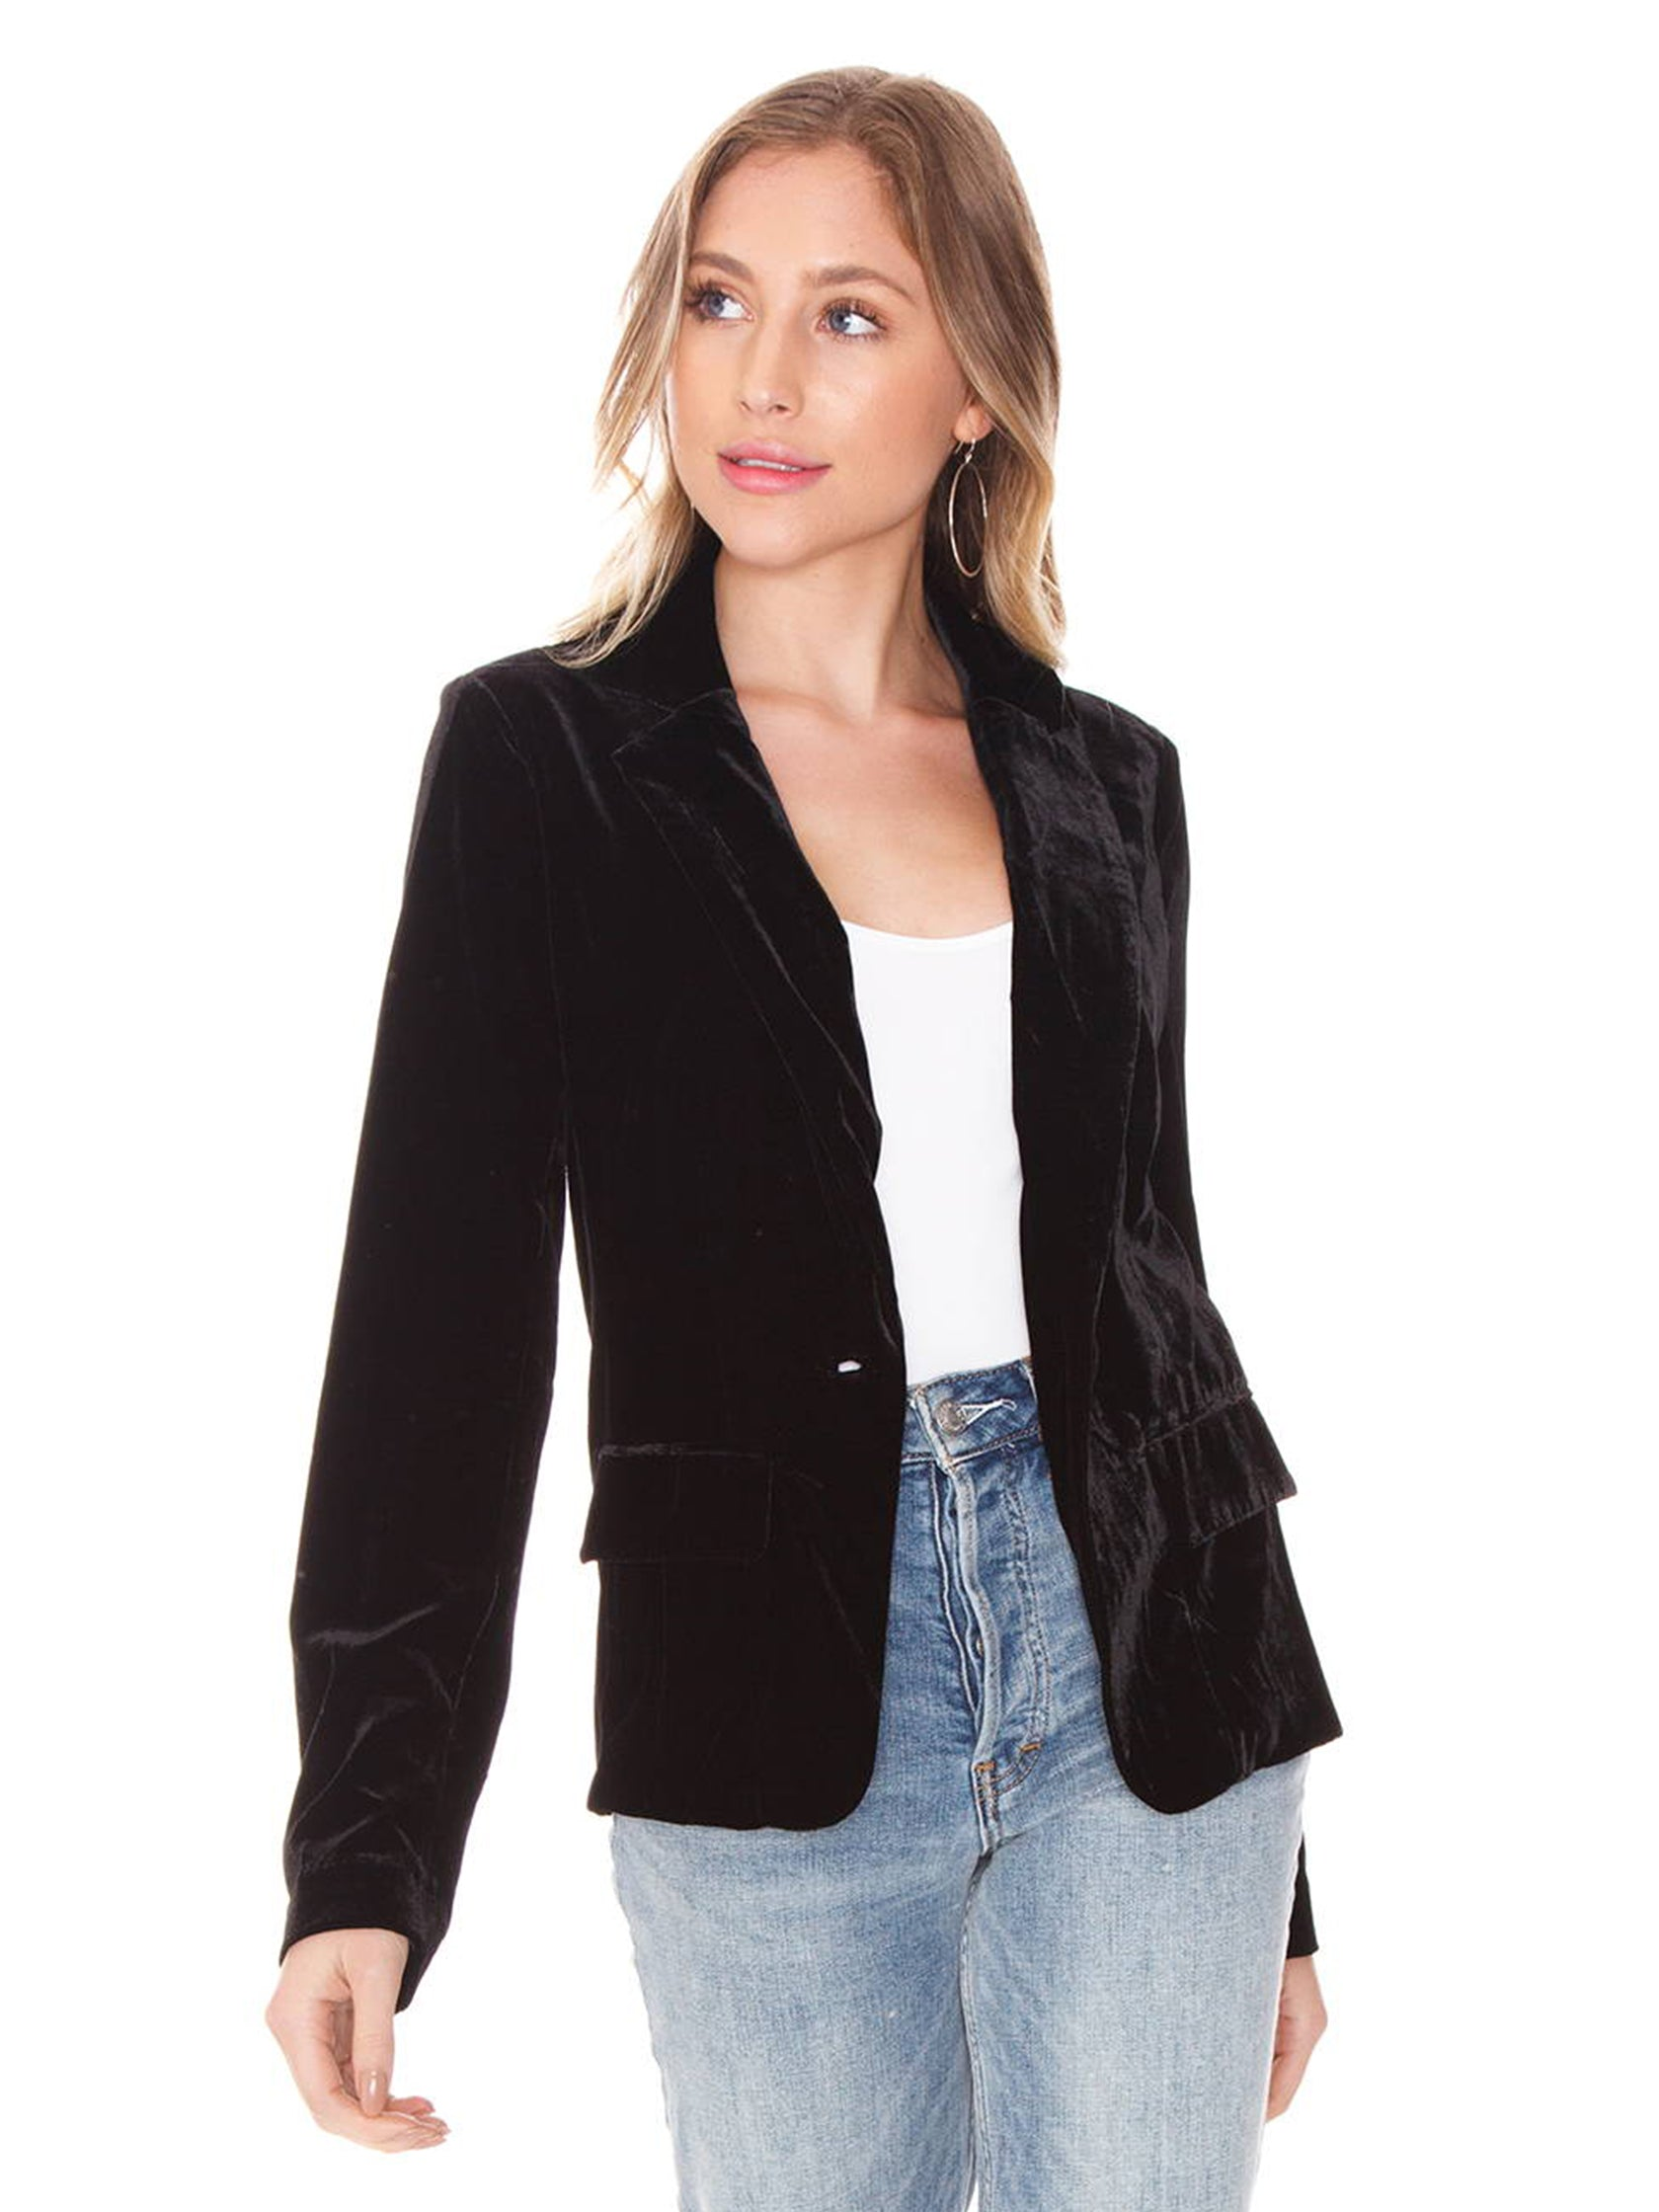 Woman wearing a blazer rental from For Love & Lemons called Viva Velvet Blazer